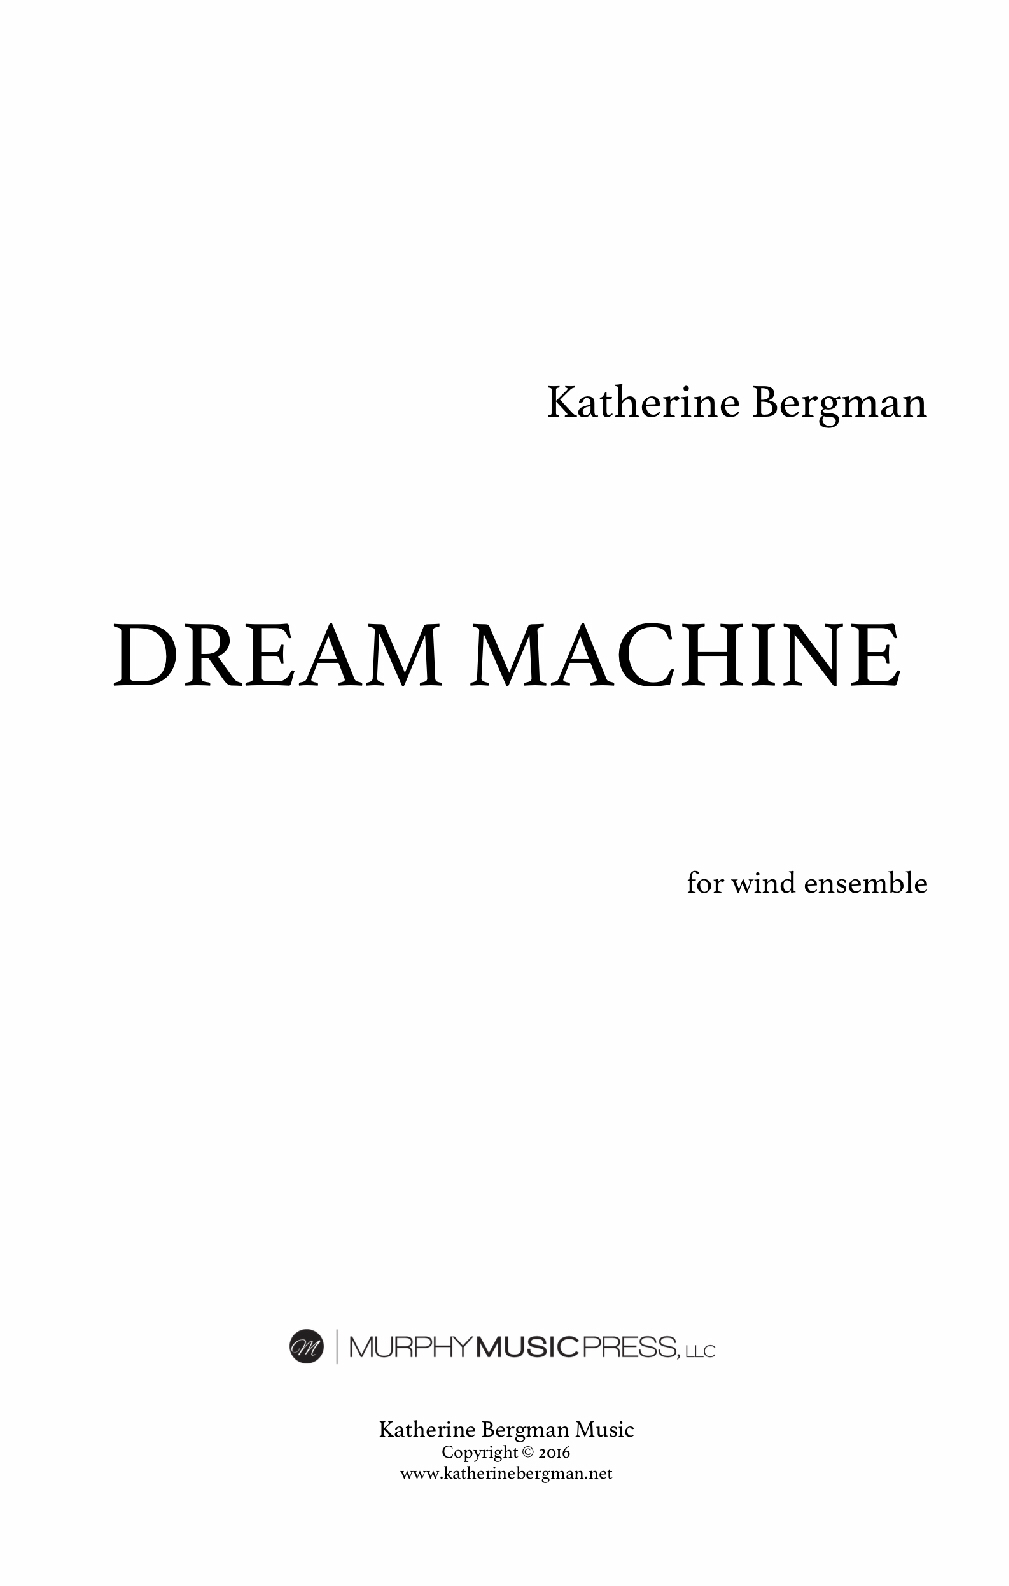 Dream Machine by Katherine Bergman